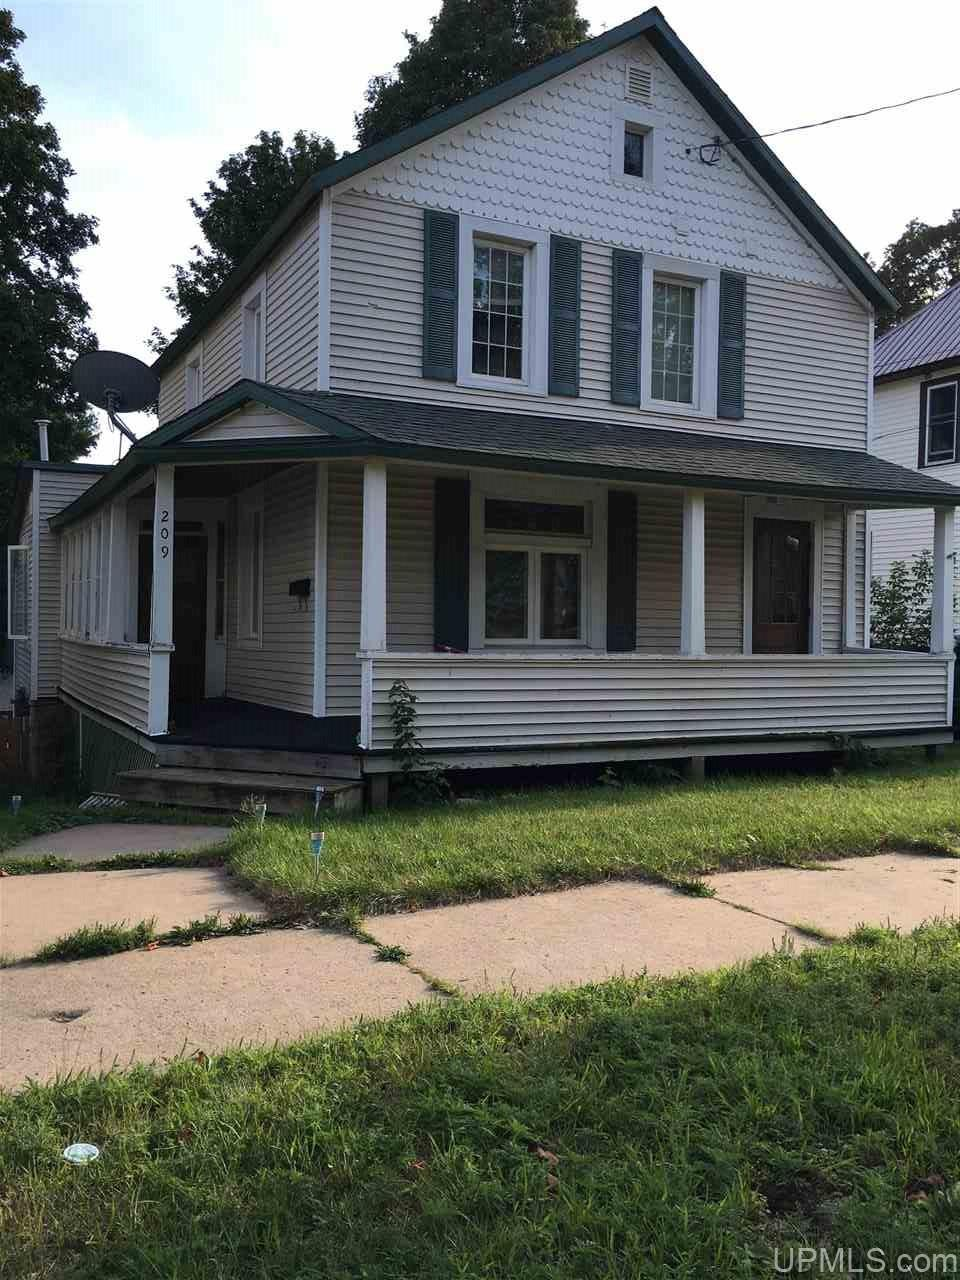 209 Blemhuber Ave, Marquette, MI 49855